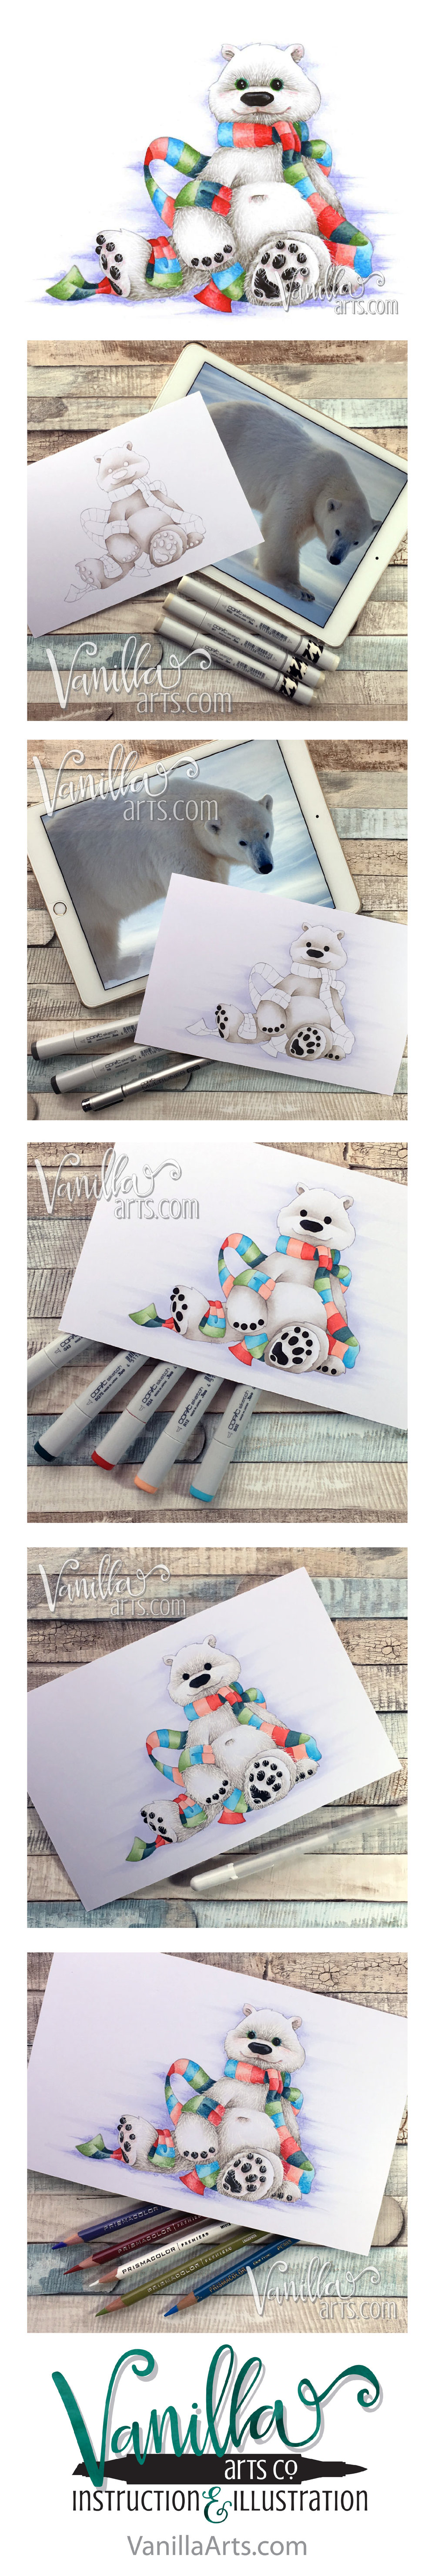 "Join the Free Digi Club to receive challenging stamp images designed for Copic, colored pencil, or watercolor. ""Hudson the Bear"" Jan 2017 